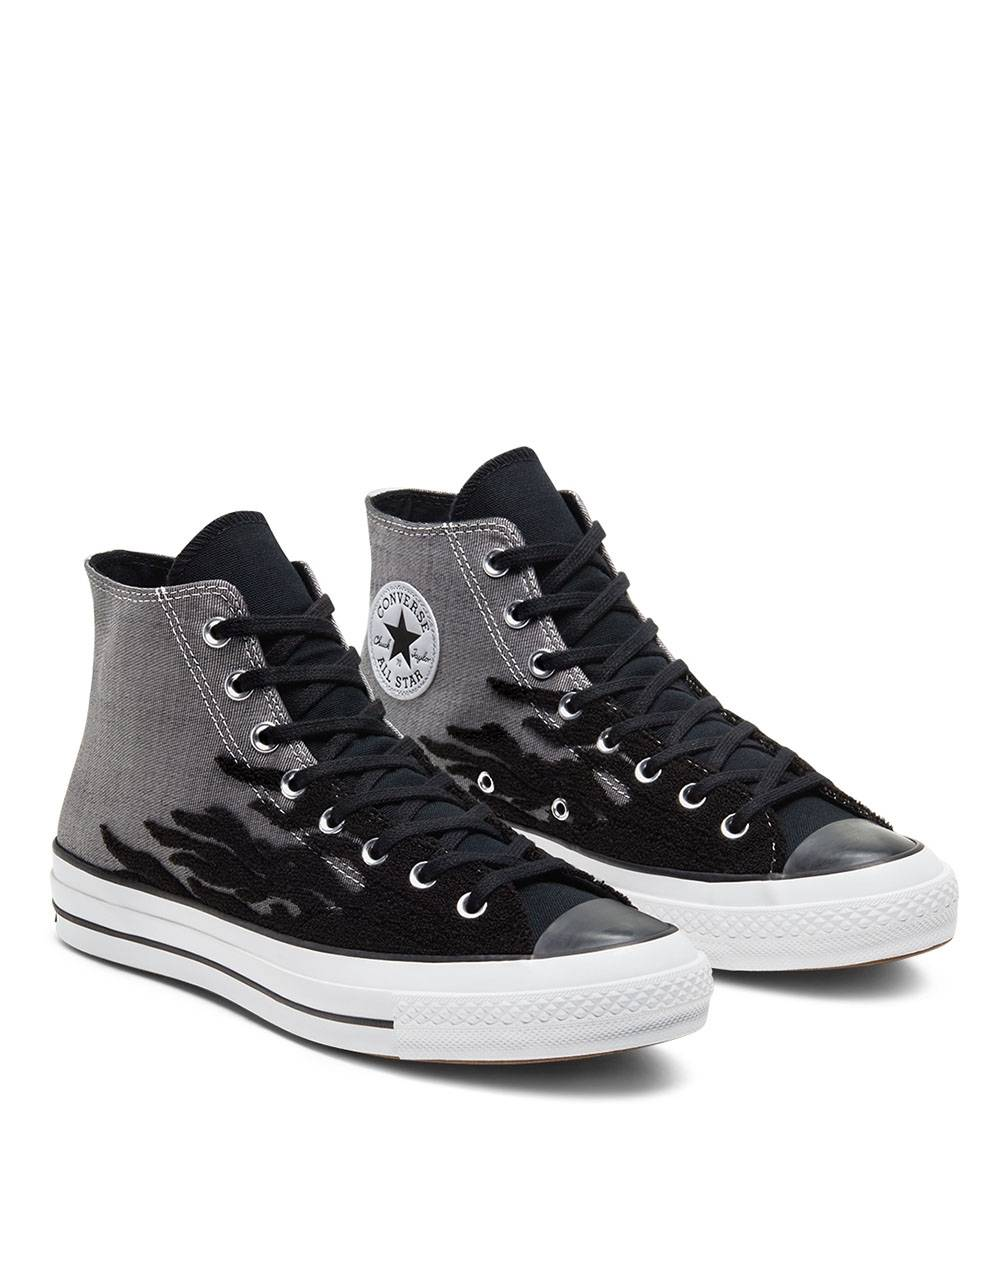 Converse Archive Flames Chuck 70 High Top - Black/grey Converse Sneakers 106,00 €